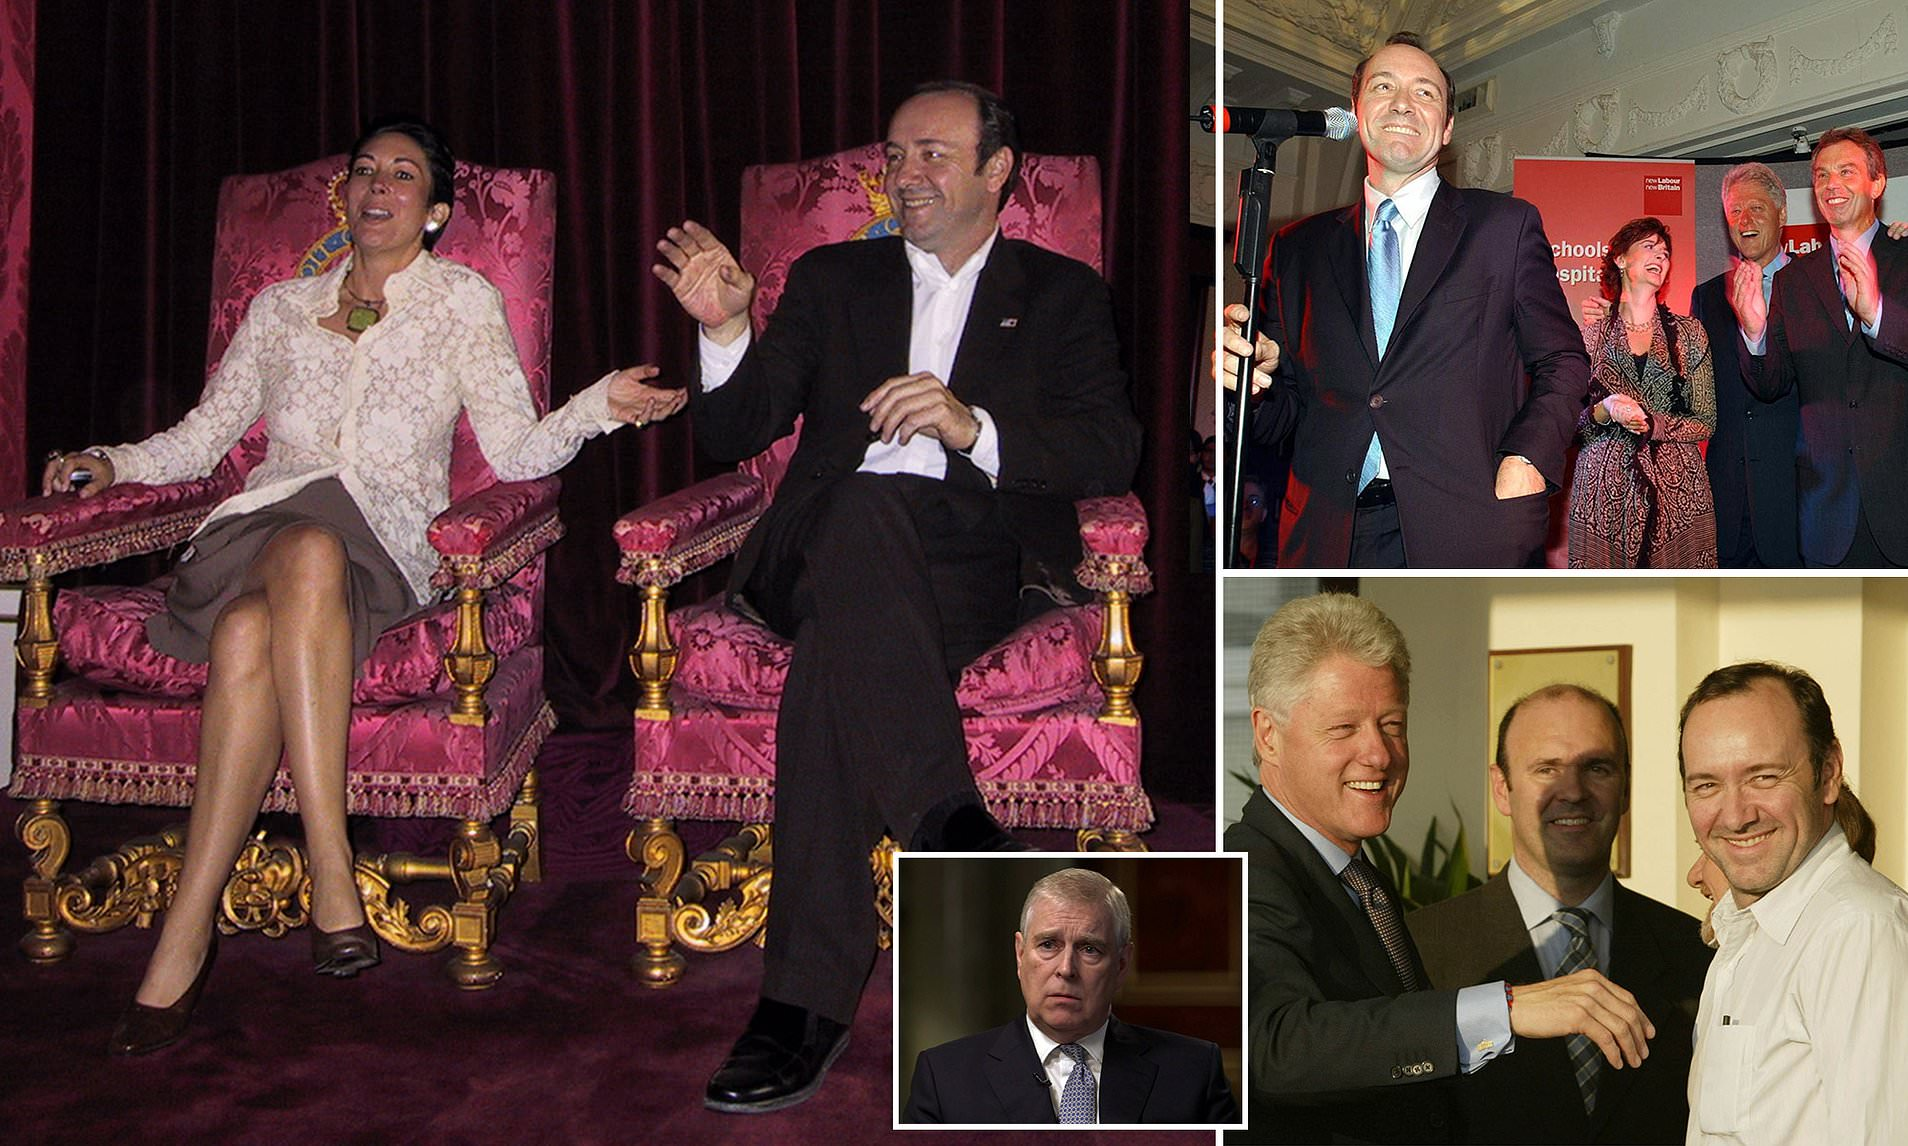 Kevin Spacey w Ghislaine Maxwell Bill Clinton and Prince Andrew